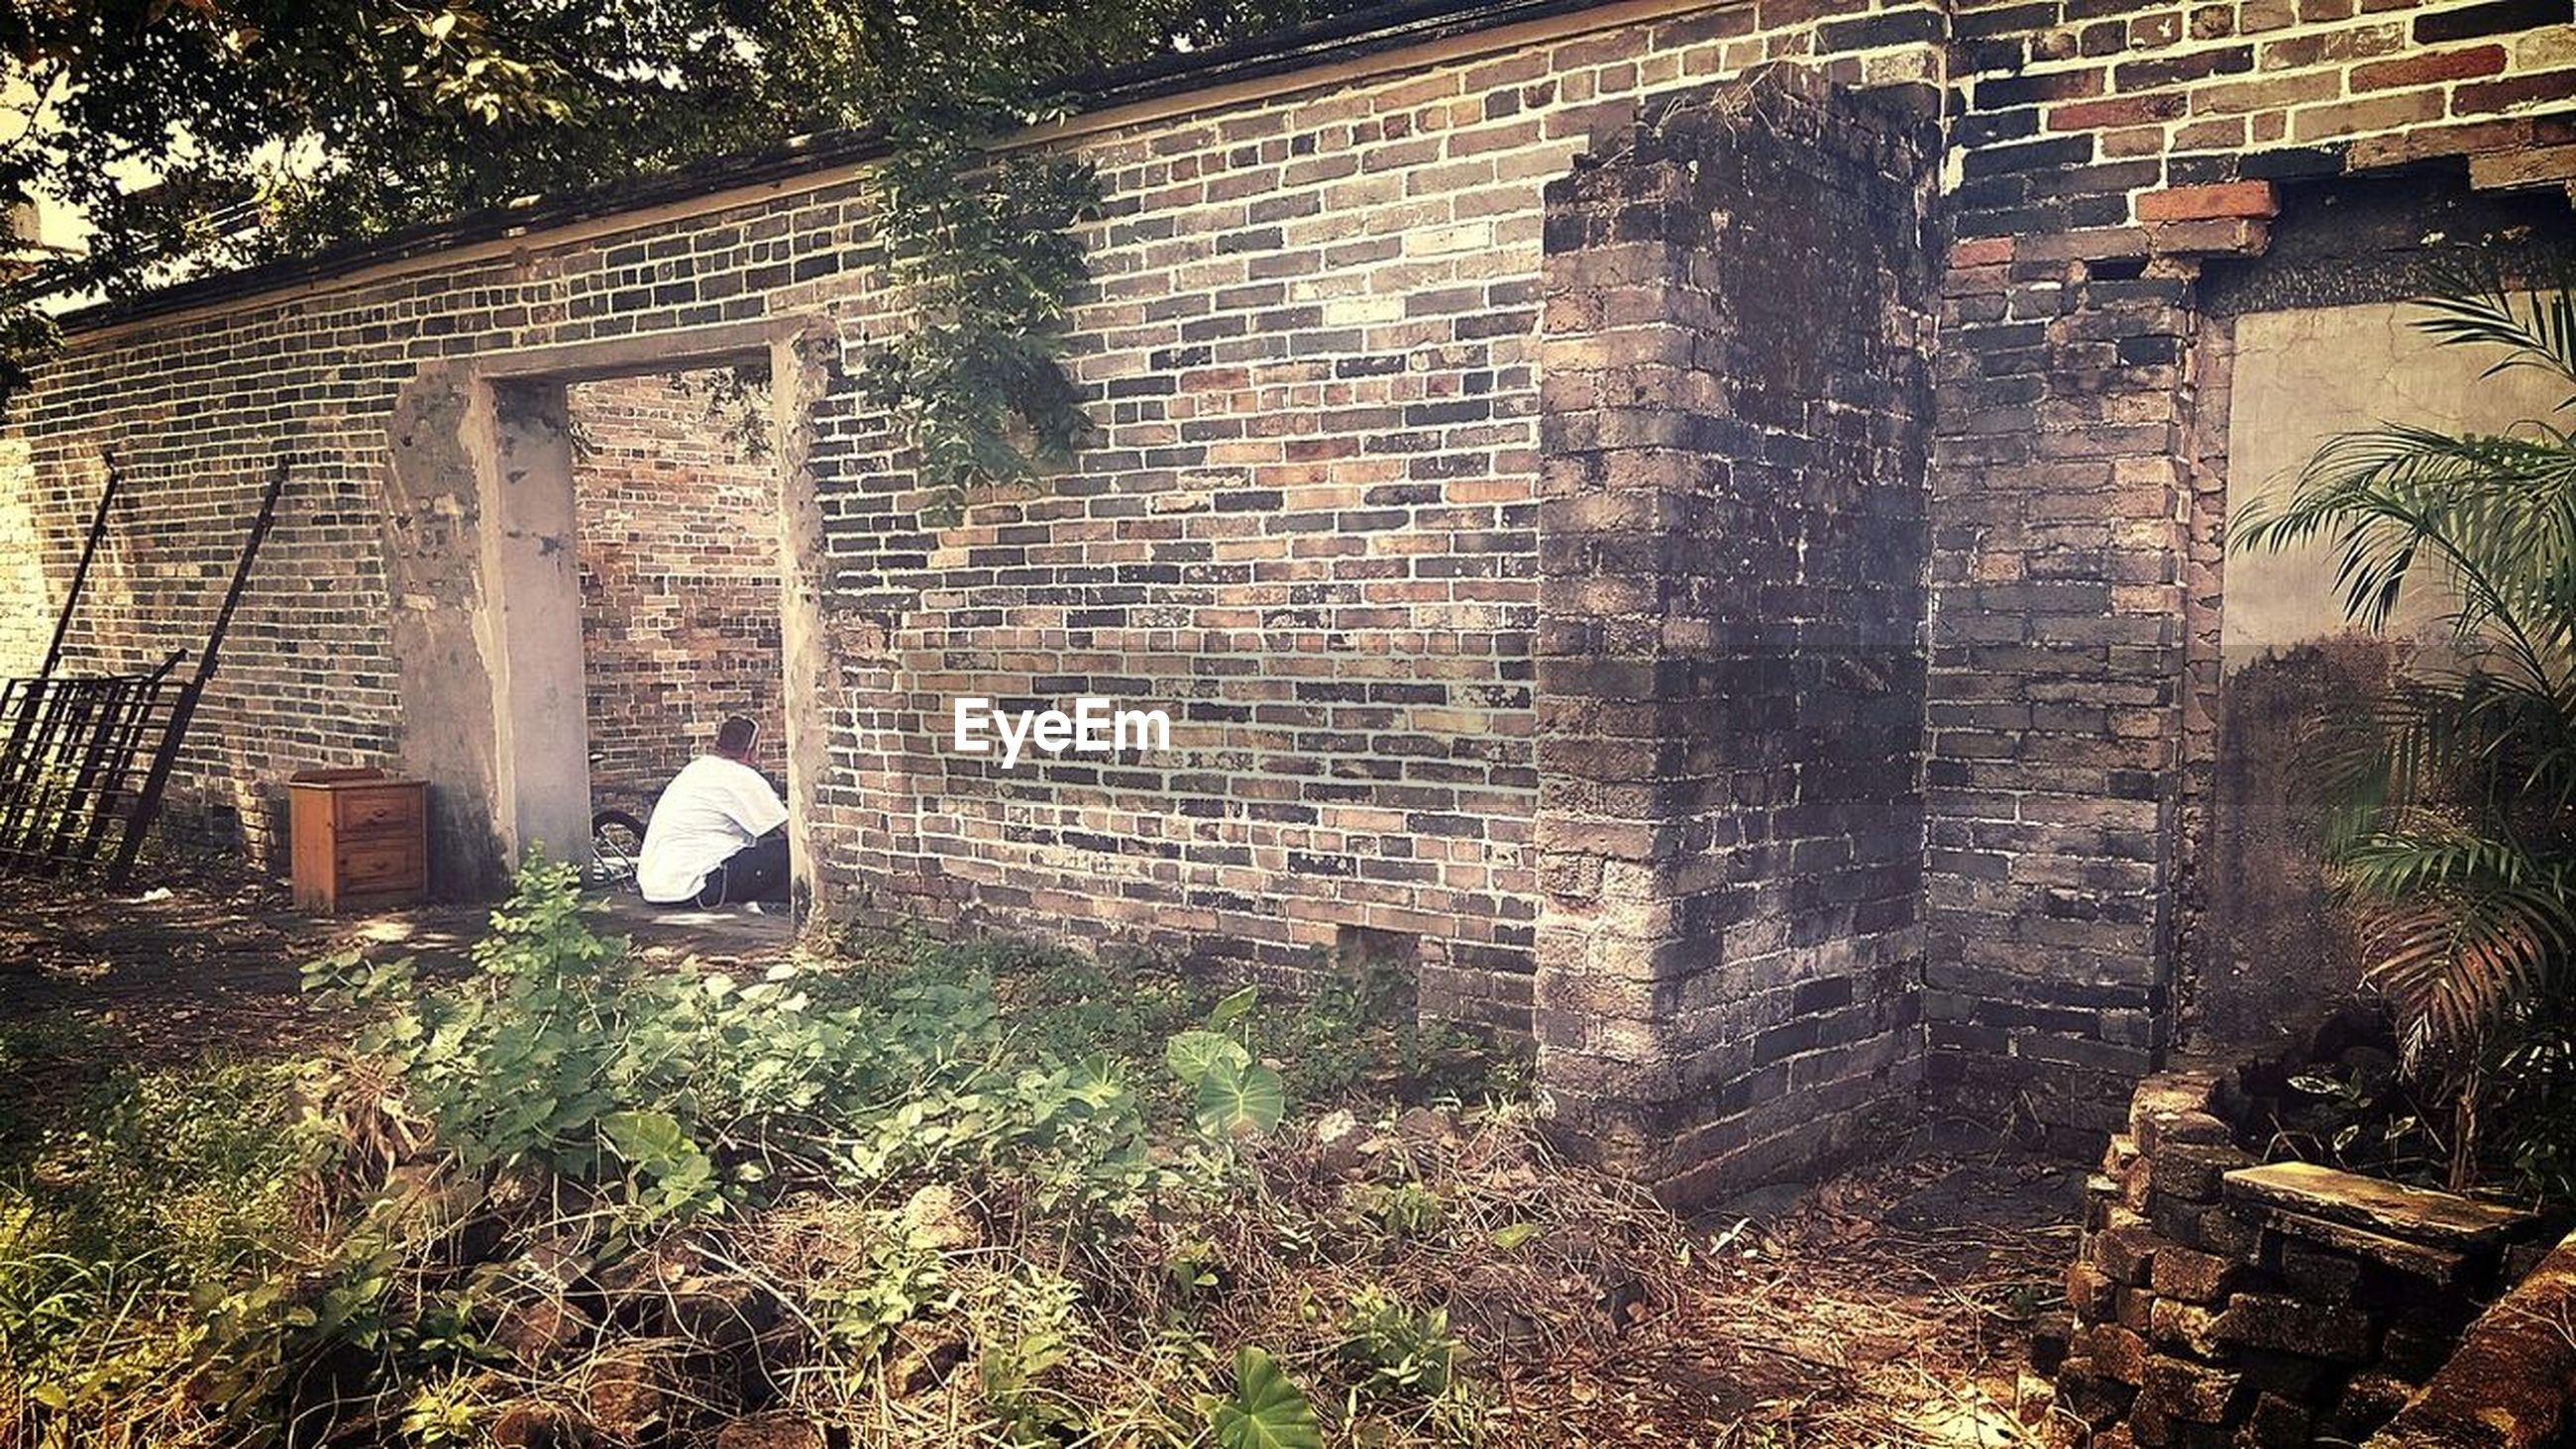 architecture, built structure, building exterior, abandoned, brick wall, wall - building feature, old, building, window, plant, damaged, obsolete, house, stone wall, day, outdoors, weathered, run-down, deterioration, no people